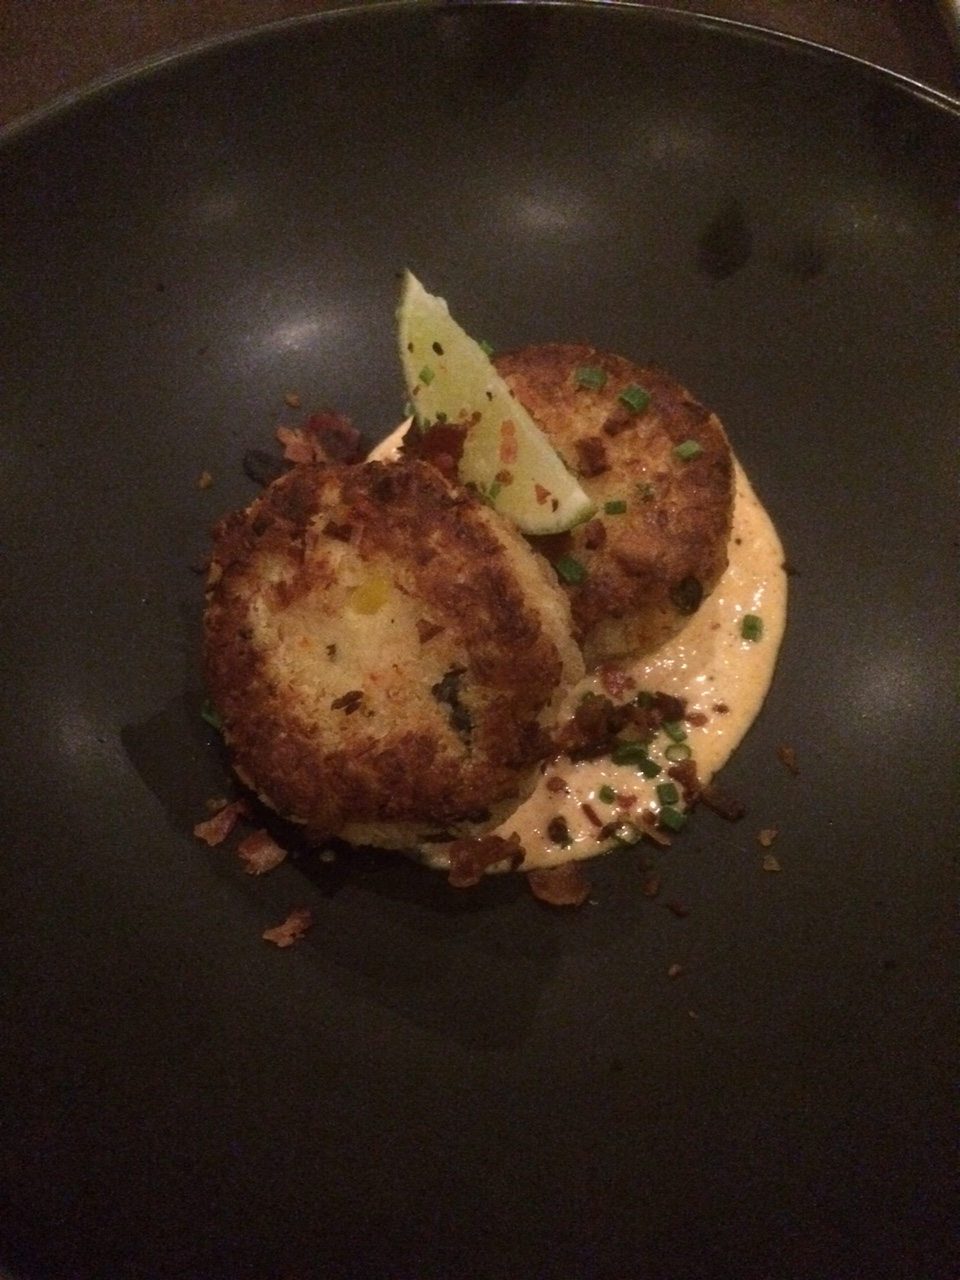 Seared crabcakes. $12